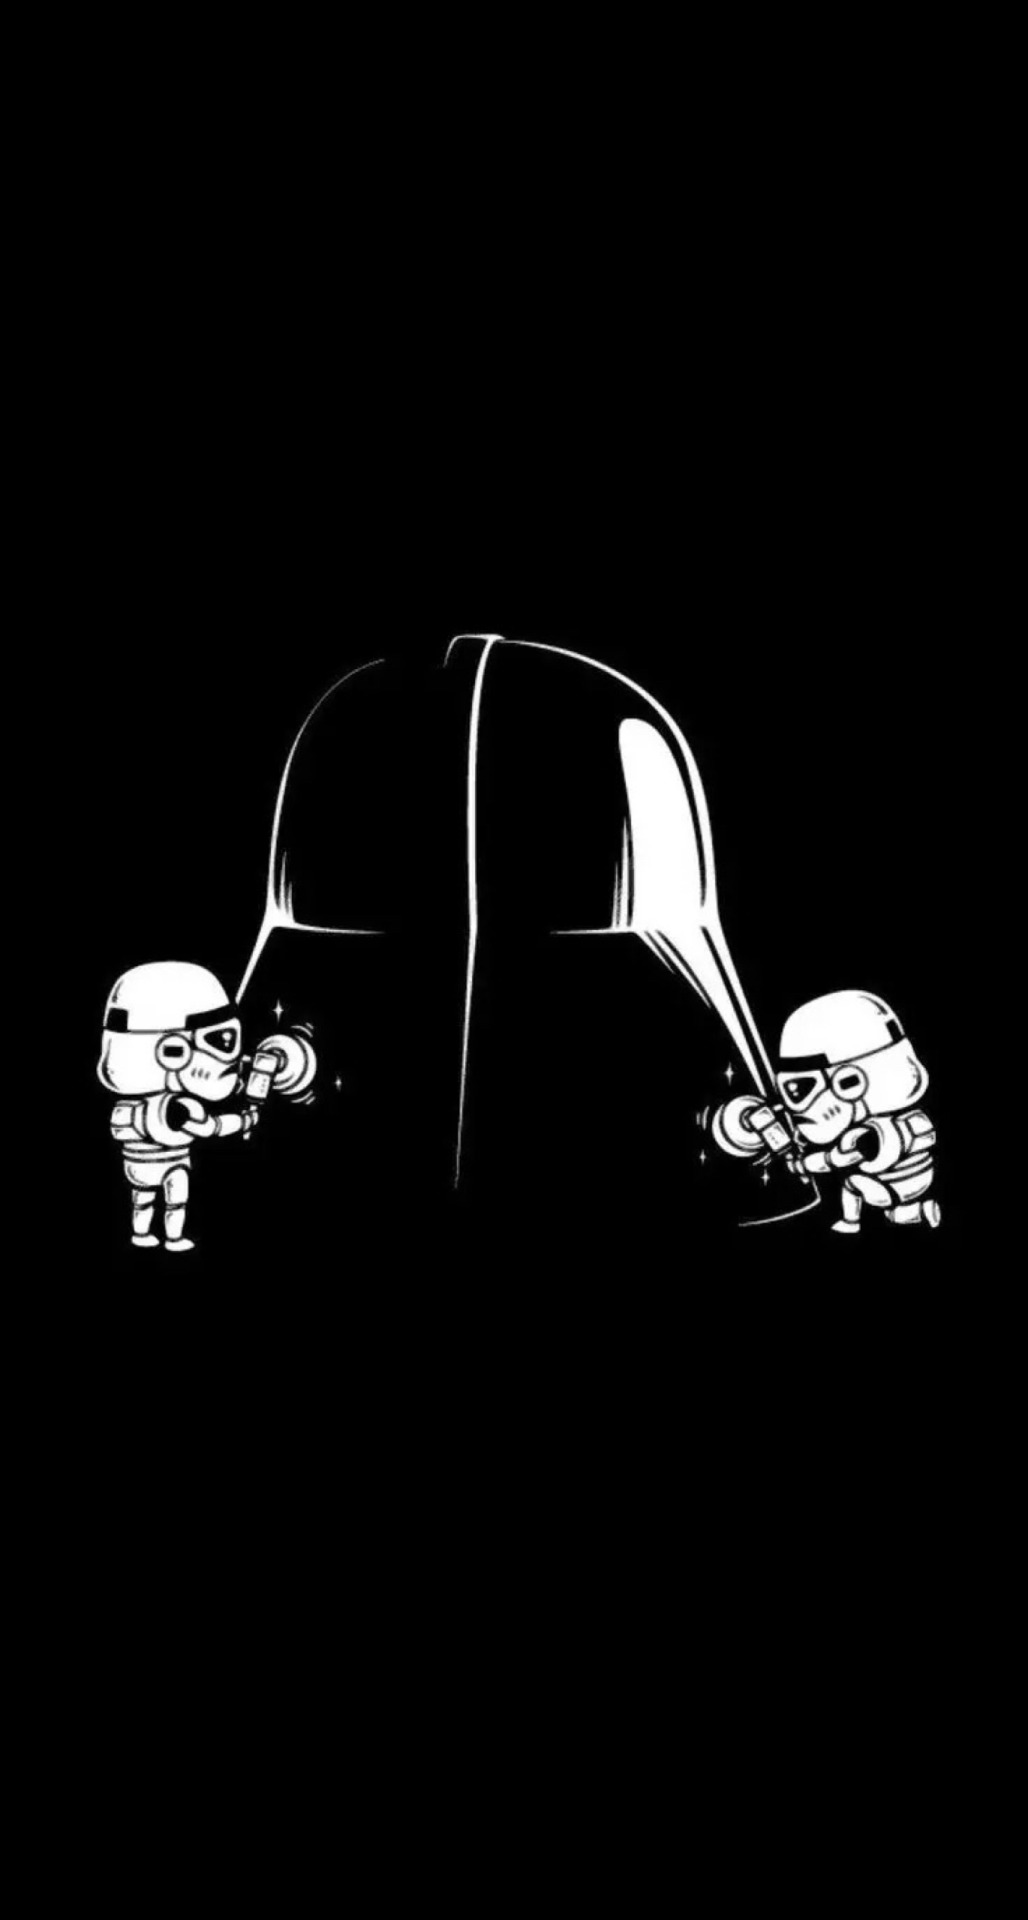 Iphone 5 Stormtrooper Wallpaper Star Wars Iphone Backgrounds Pixelstalk Net